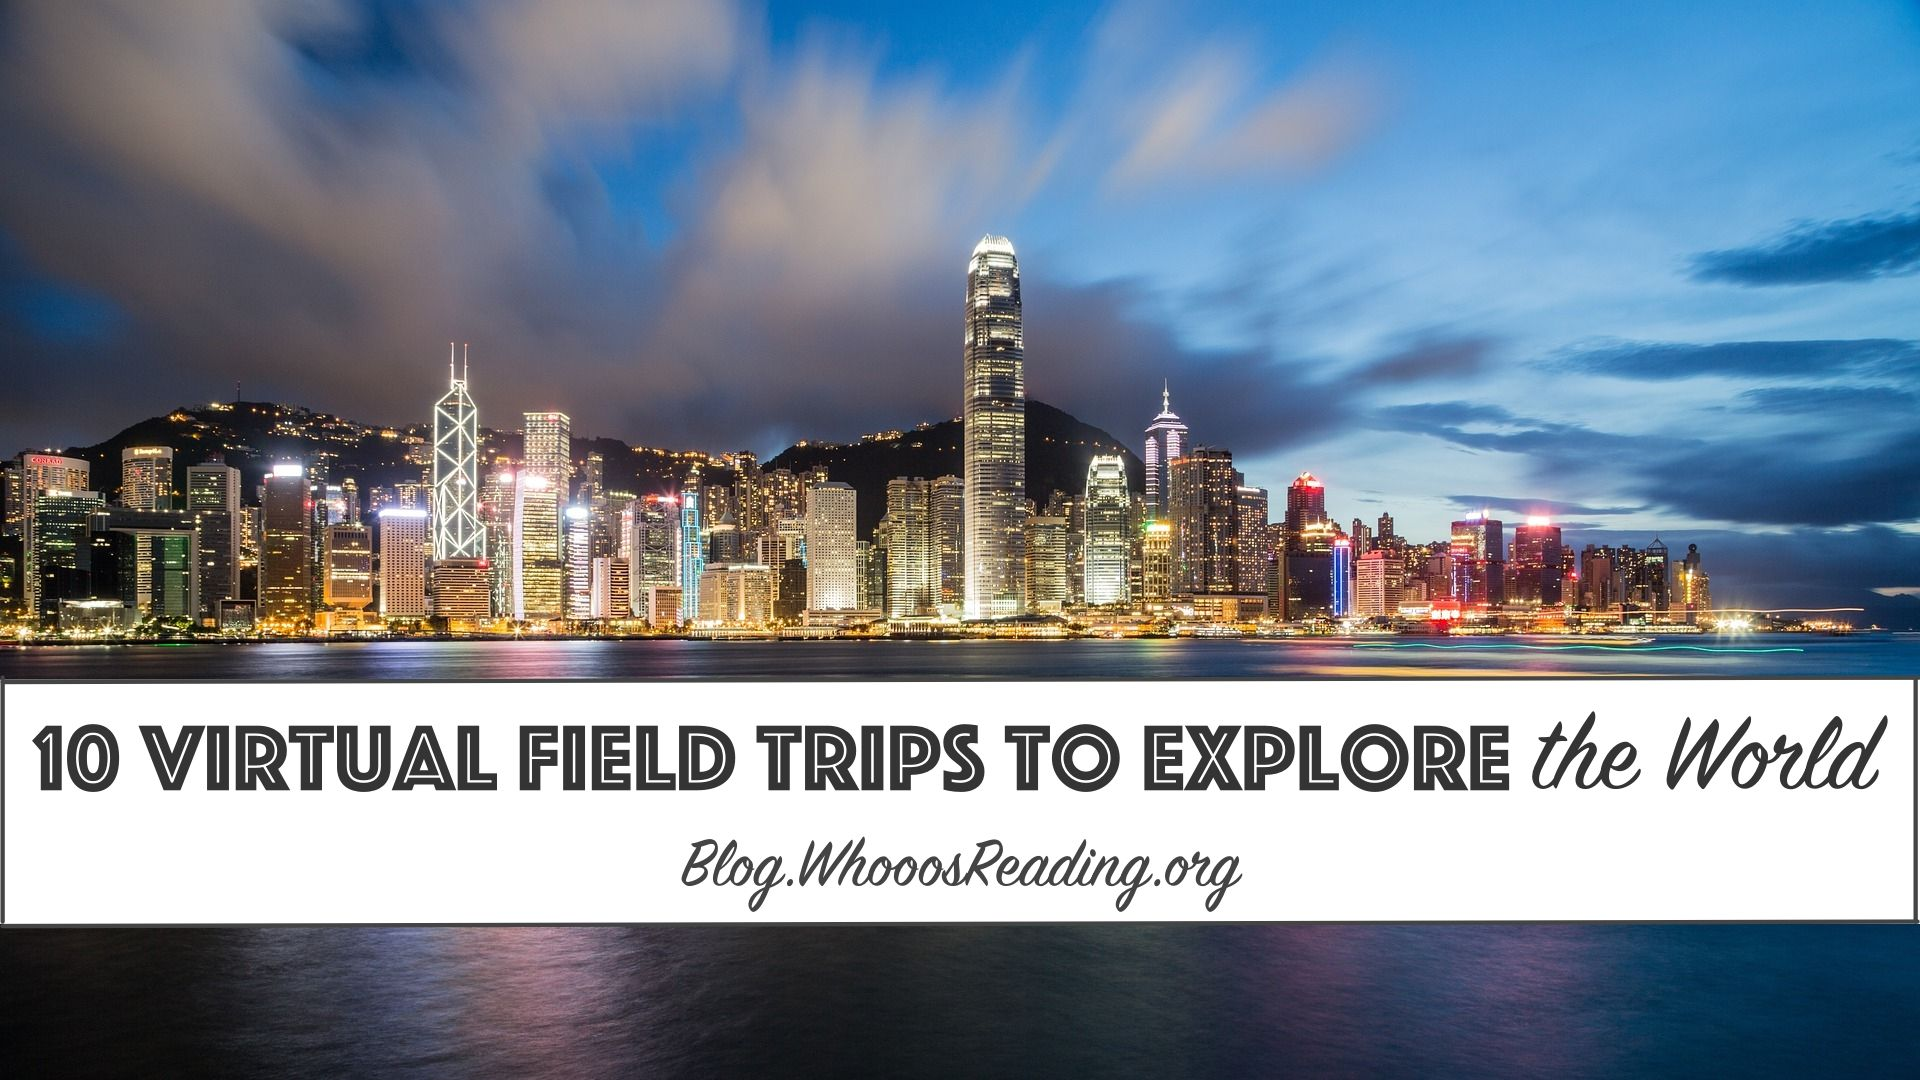 10 Virtual Field Trips To Explore The World